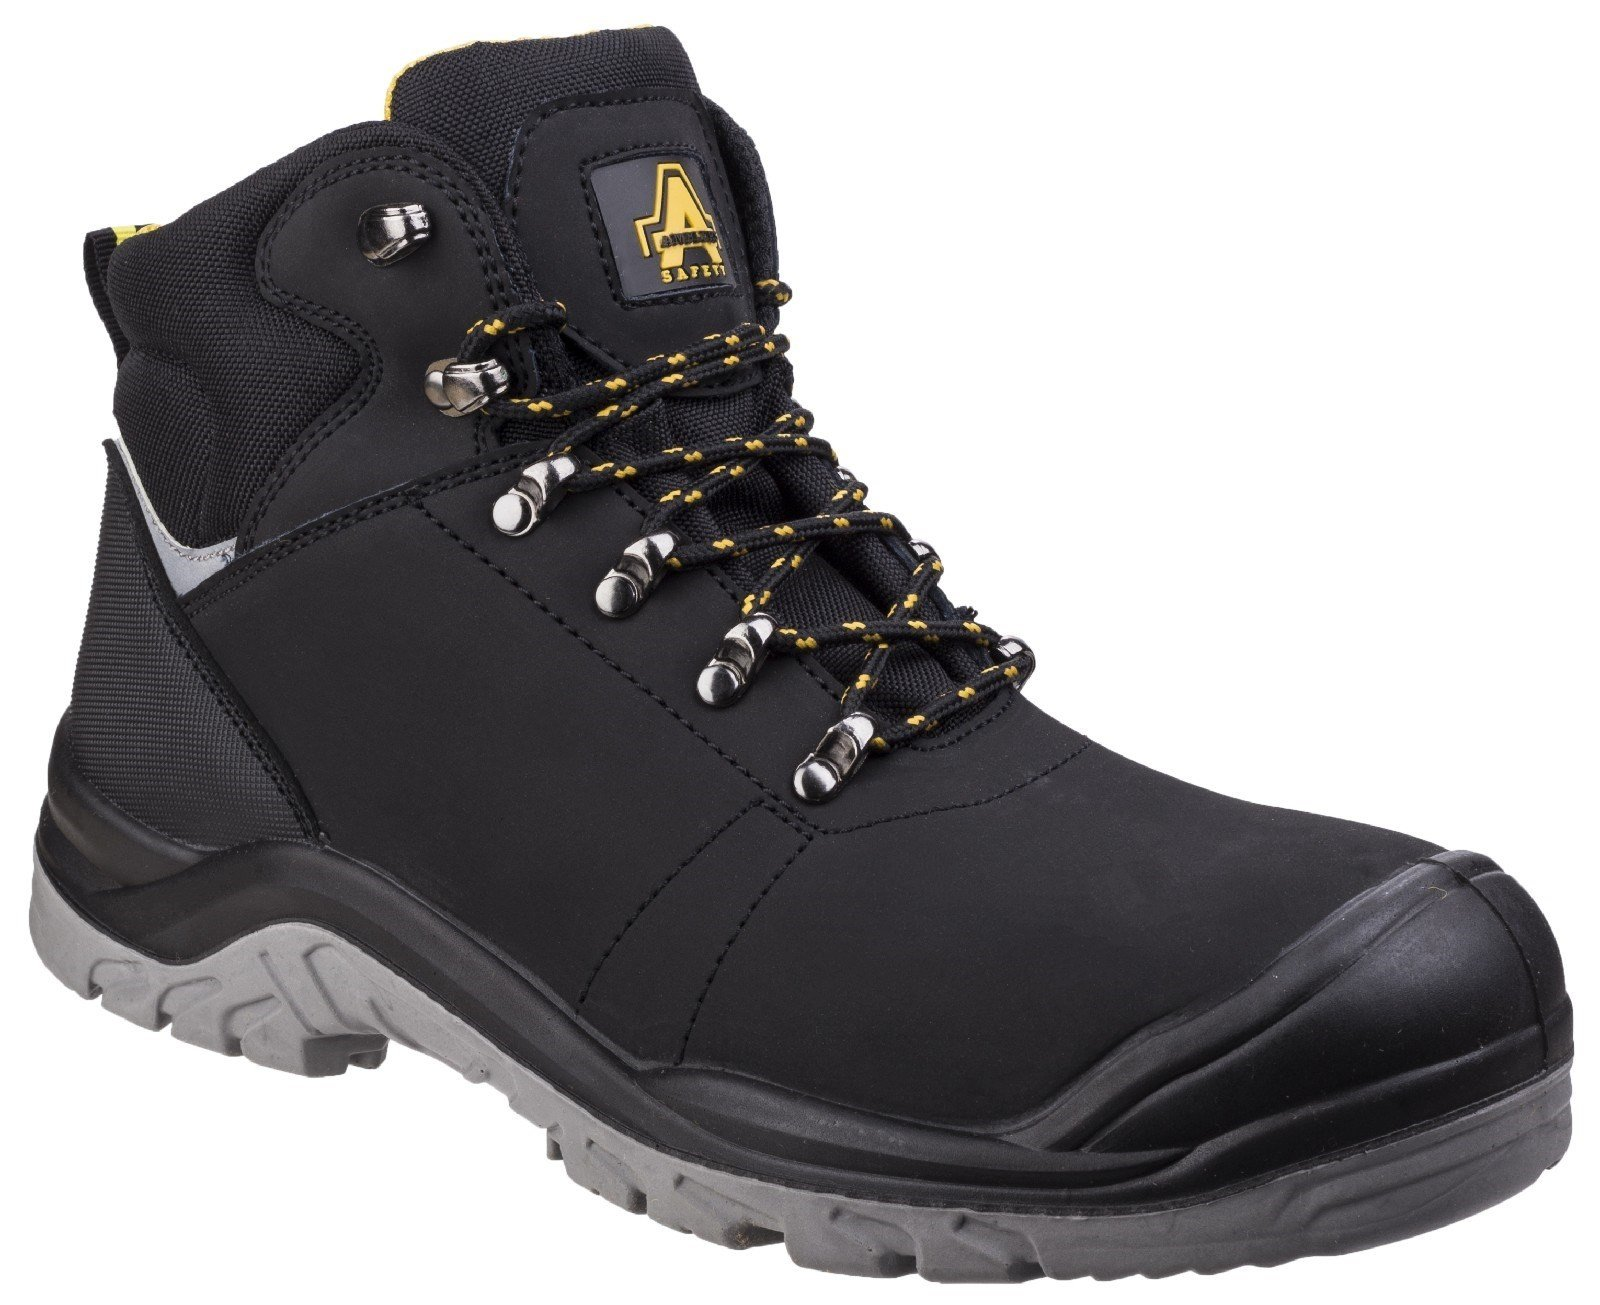 Amblers Unisex Safety Lightweight Water Resistant Leather Boot Black 25509 - Black 4